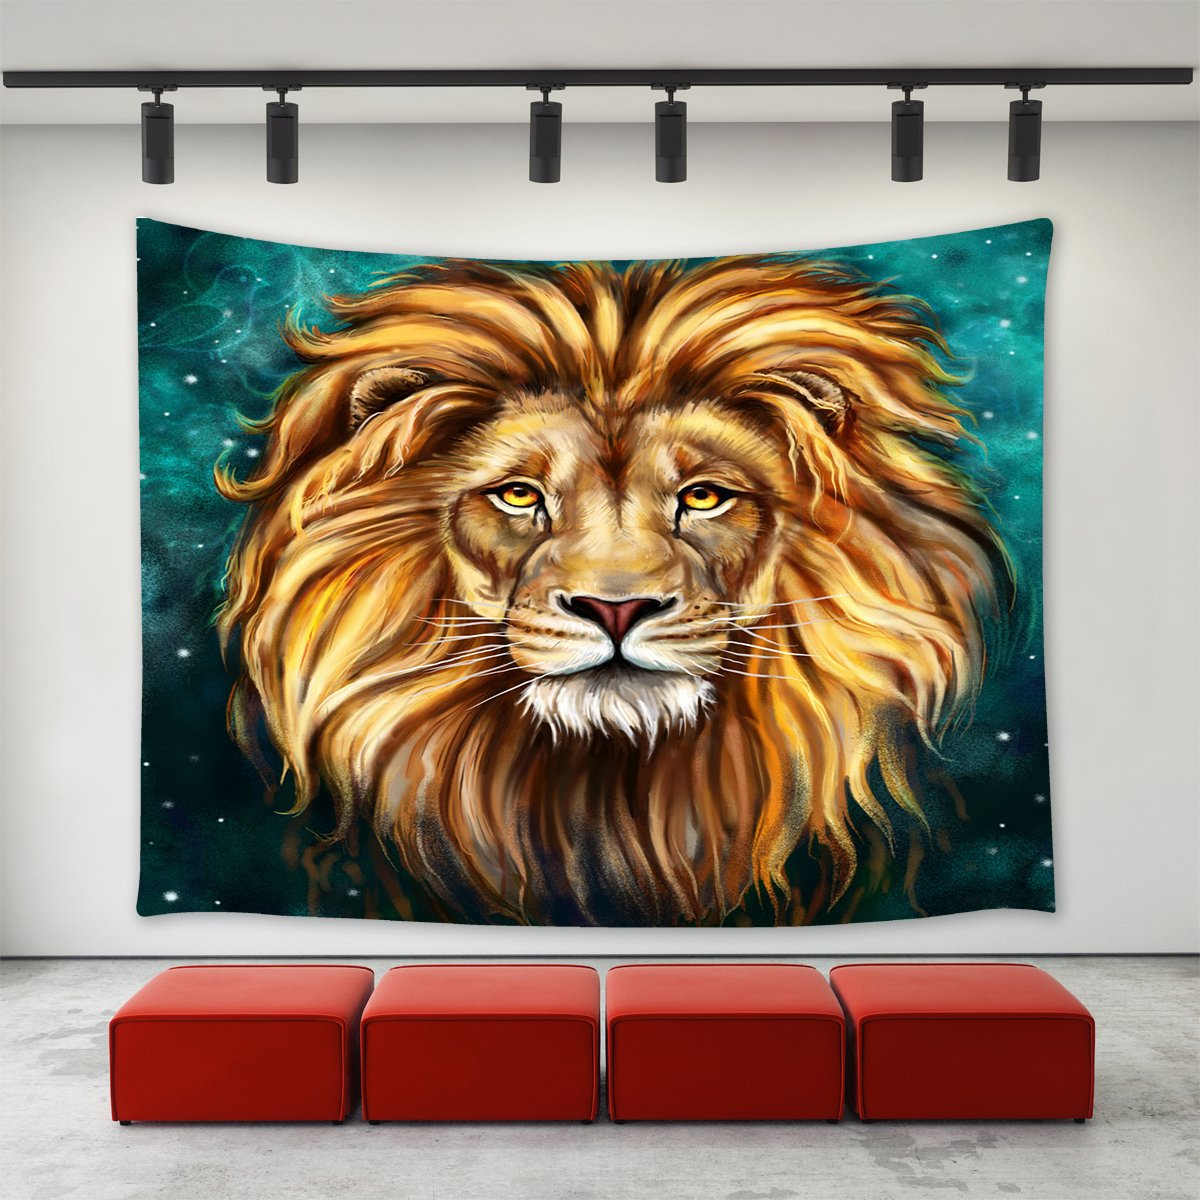 African Lion Tapestry - Vivid 3D Print College Dorm Room Decor Accessories Animal Wall Hanging Watercolor Wildlife Backdrop Yoga Mat Table Cloth Bed Cover - Queen Size, 80 x 60 inches